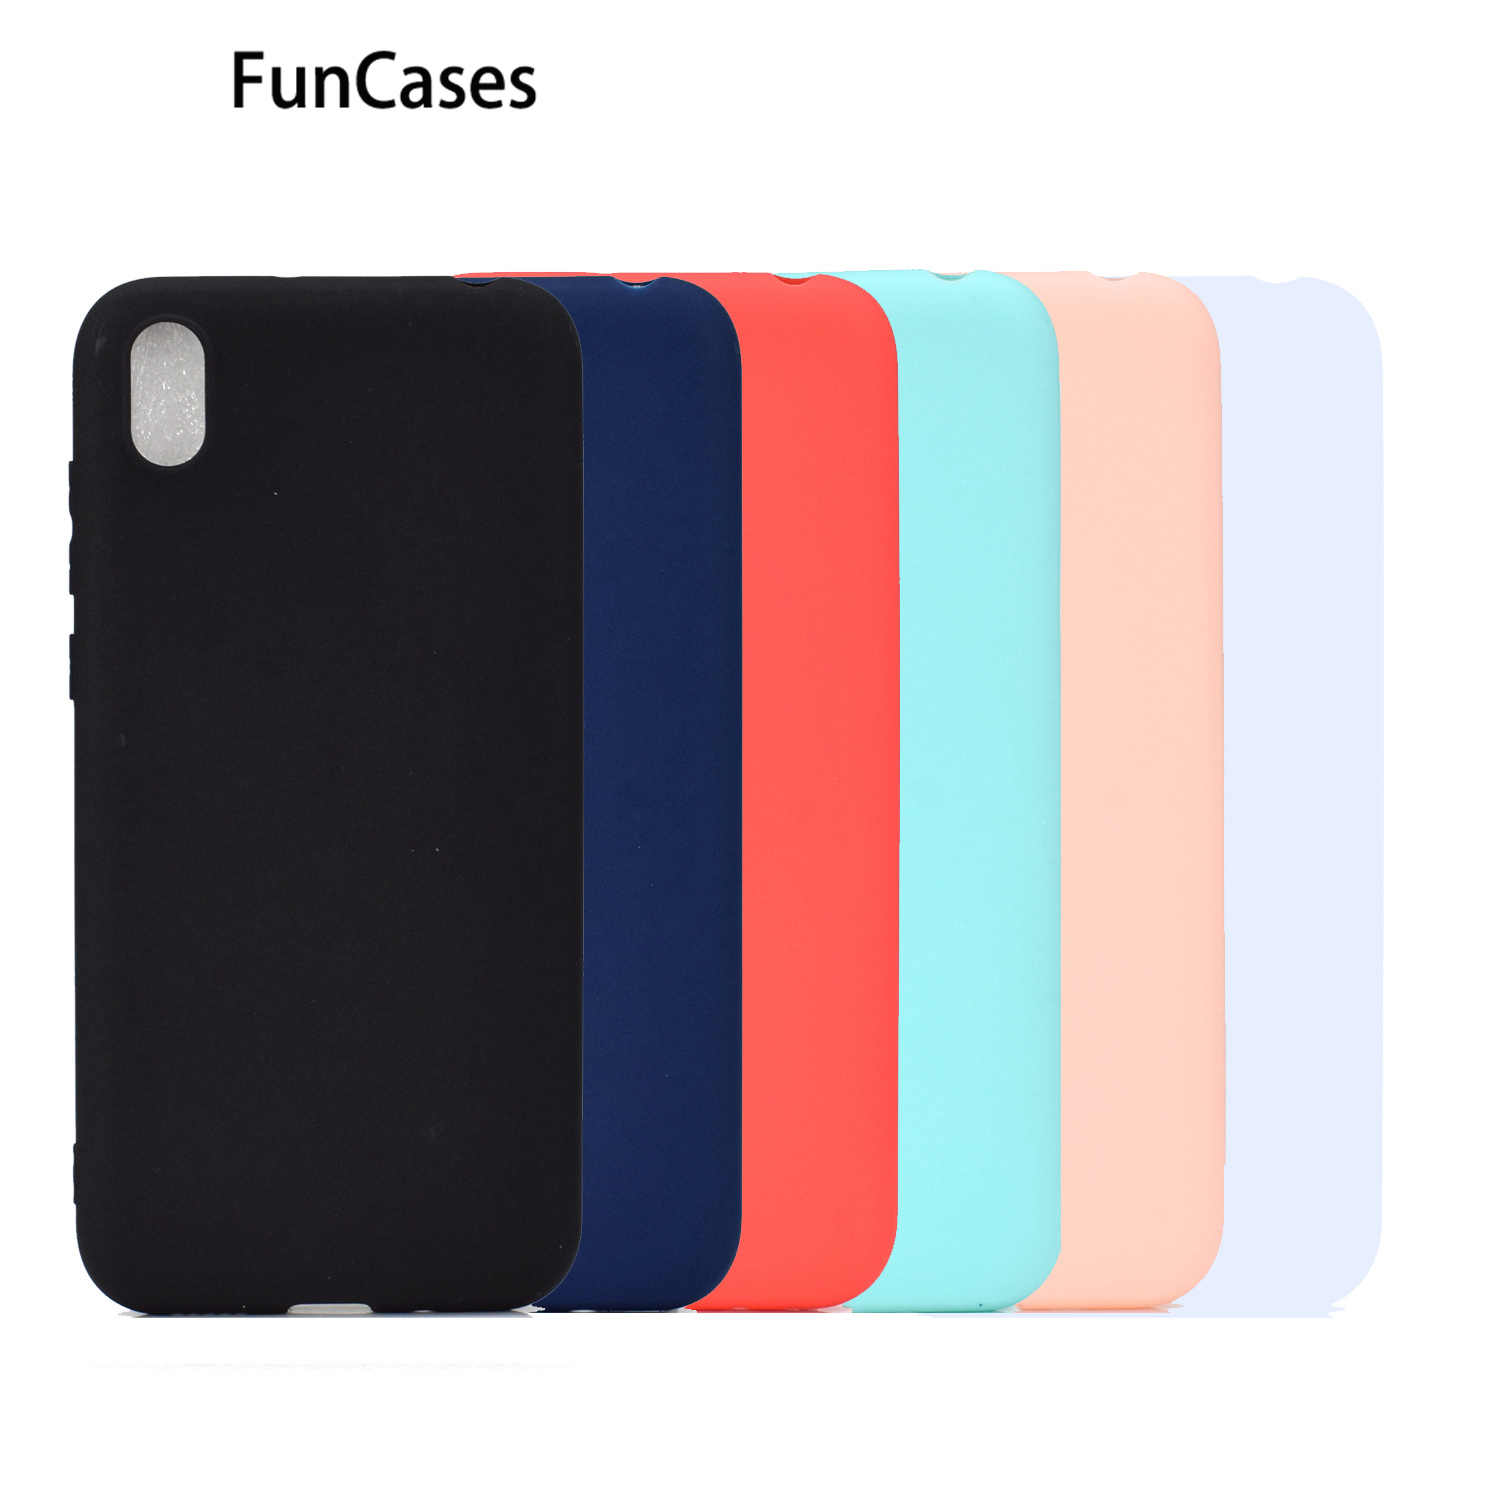 Plastic Gevallen Voor Case Huawei Honor 8S Effen Kleur Protector Soft Tpu Protector Sfor Huawei Carcaso Y5 2019 Honor 8A 8C 8X Max